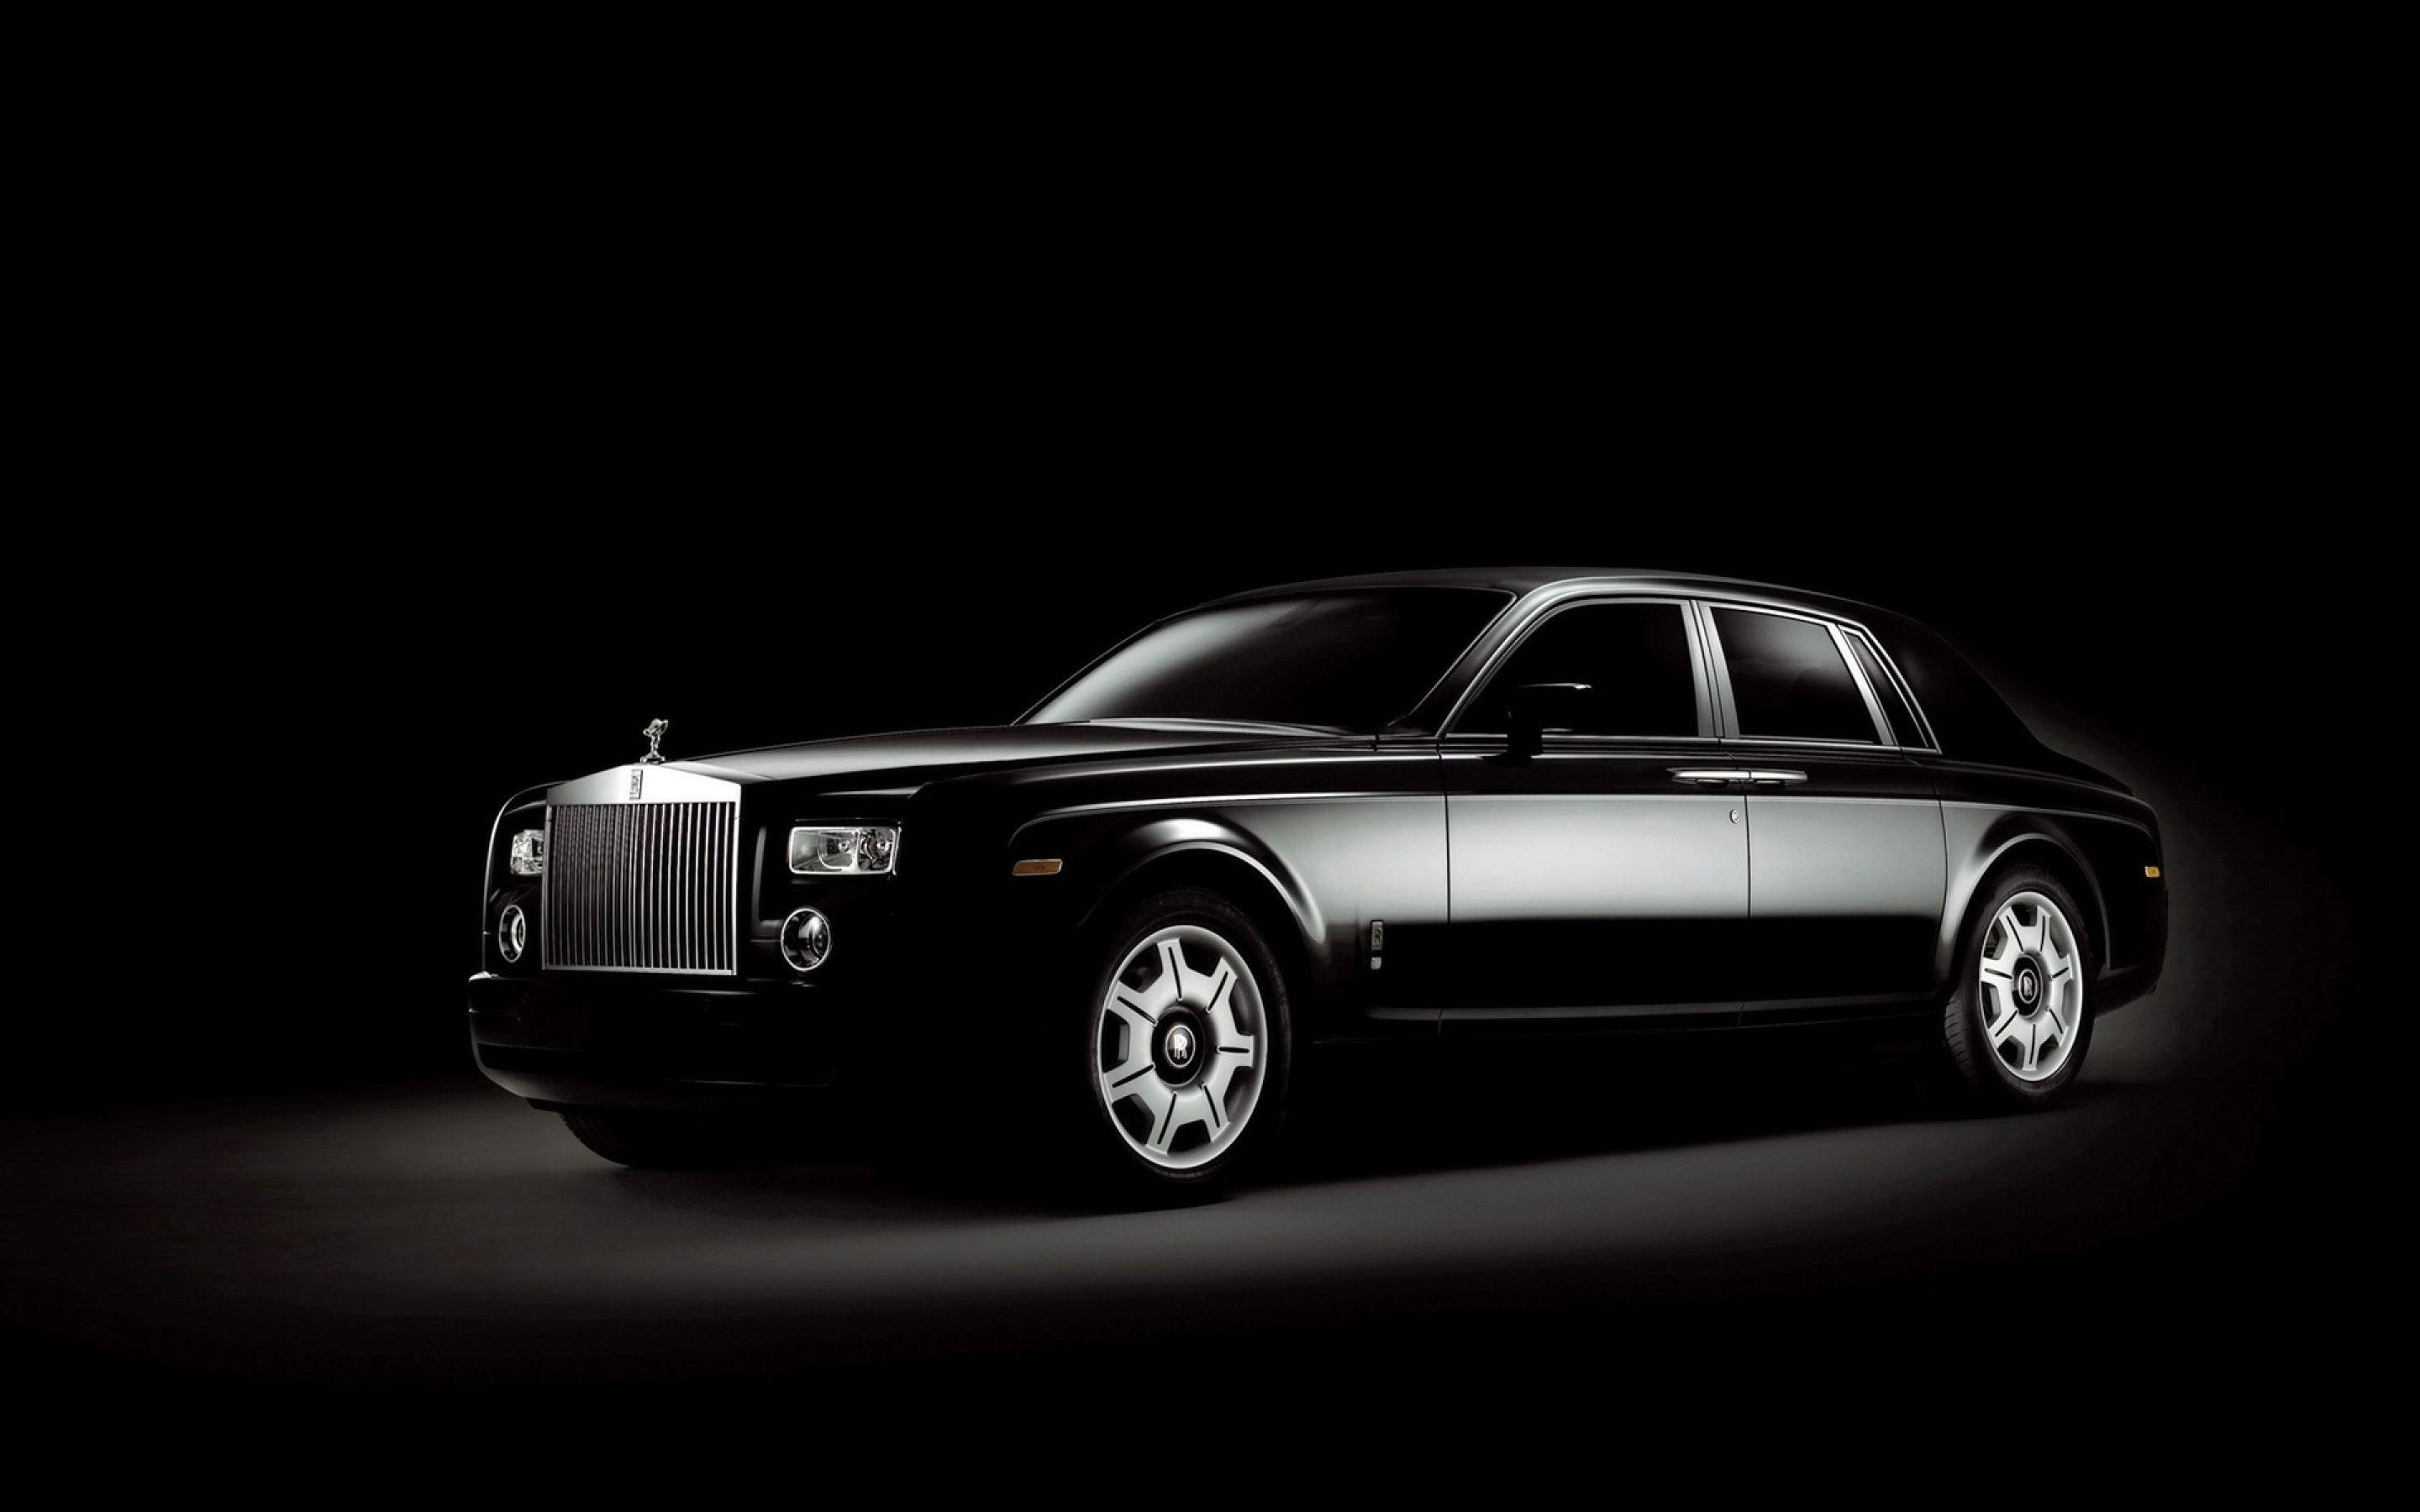 Rolls Royce Phantom Black 4k HD Wallpaper - 4K Cars Wallpapers